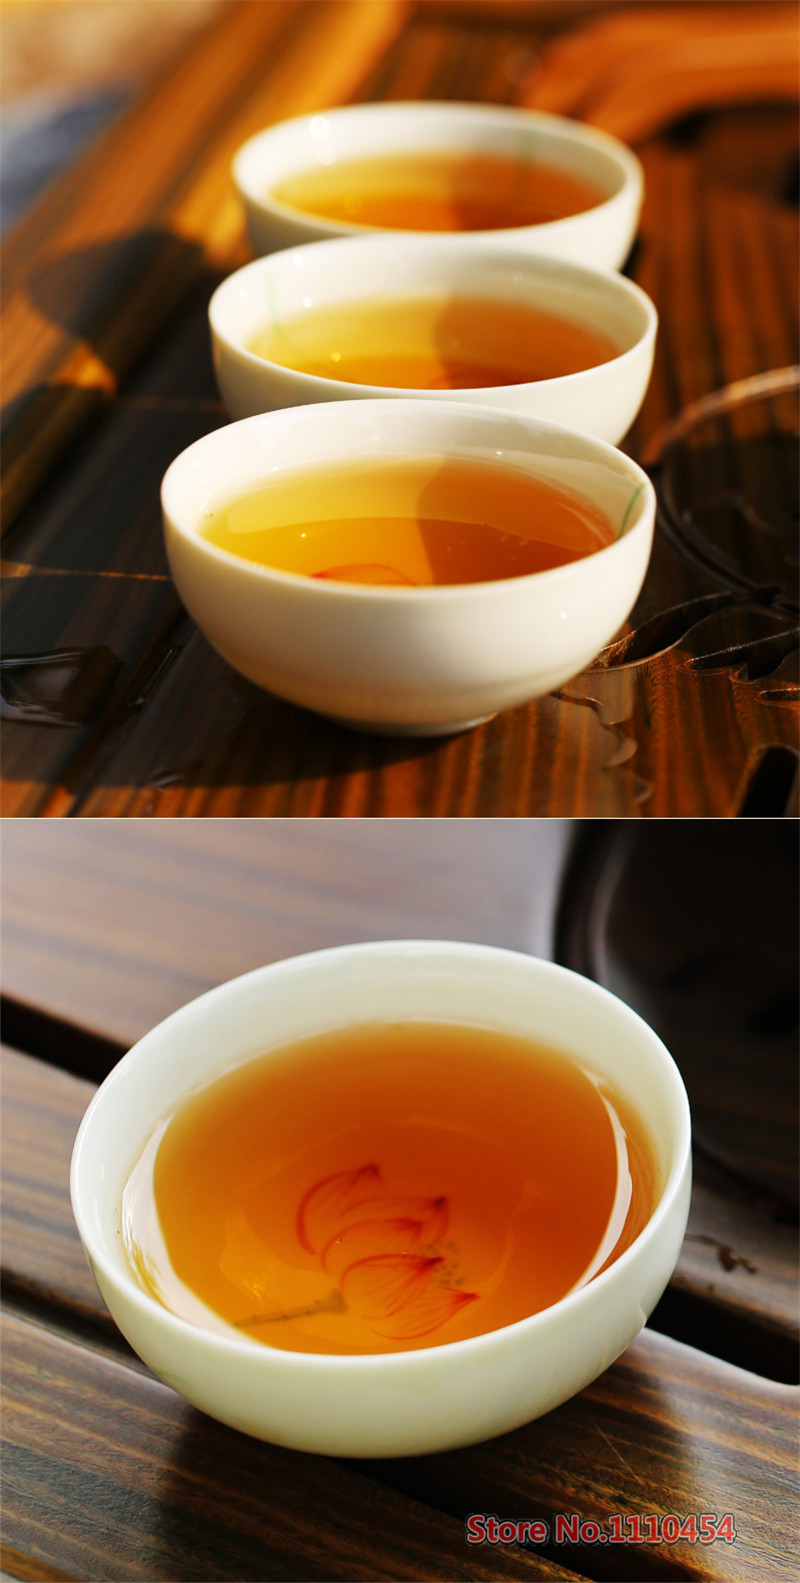 C-PE070 Free Shipping Caicheng Fragrant white moonlight old tea puer raw tea Moonlight Beauty 100g yueguangbai shen Pu'er